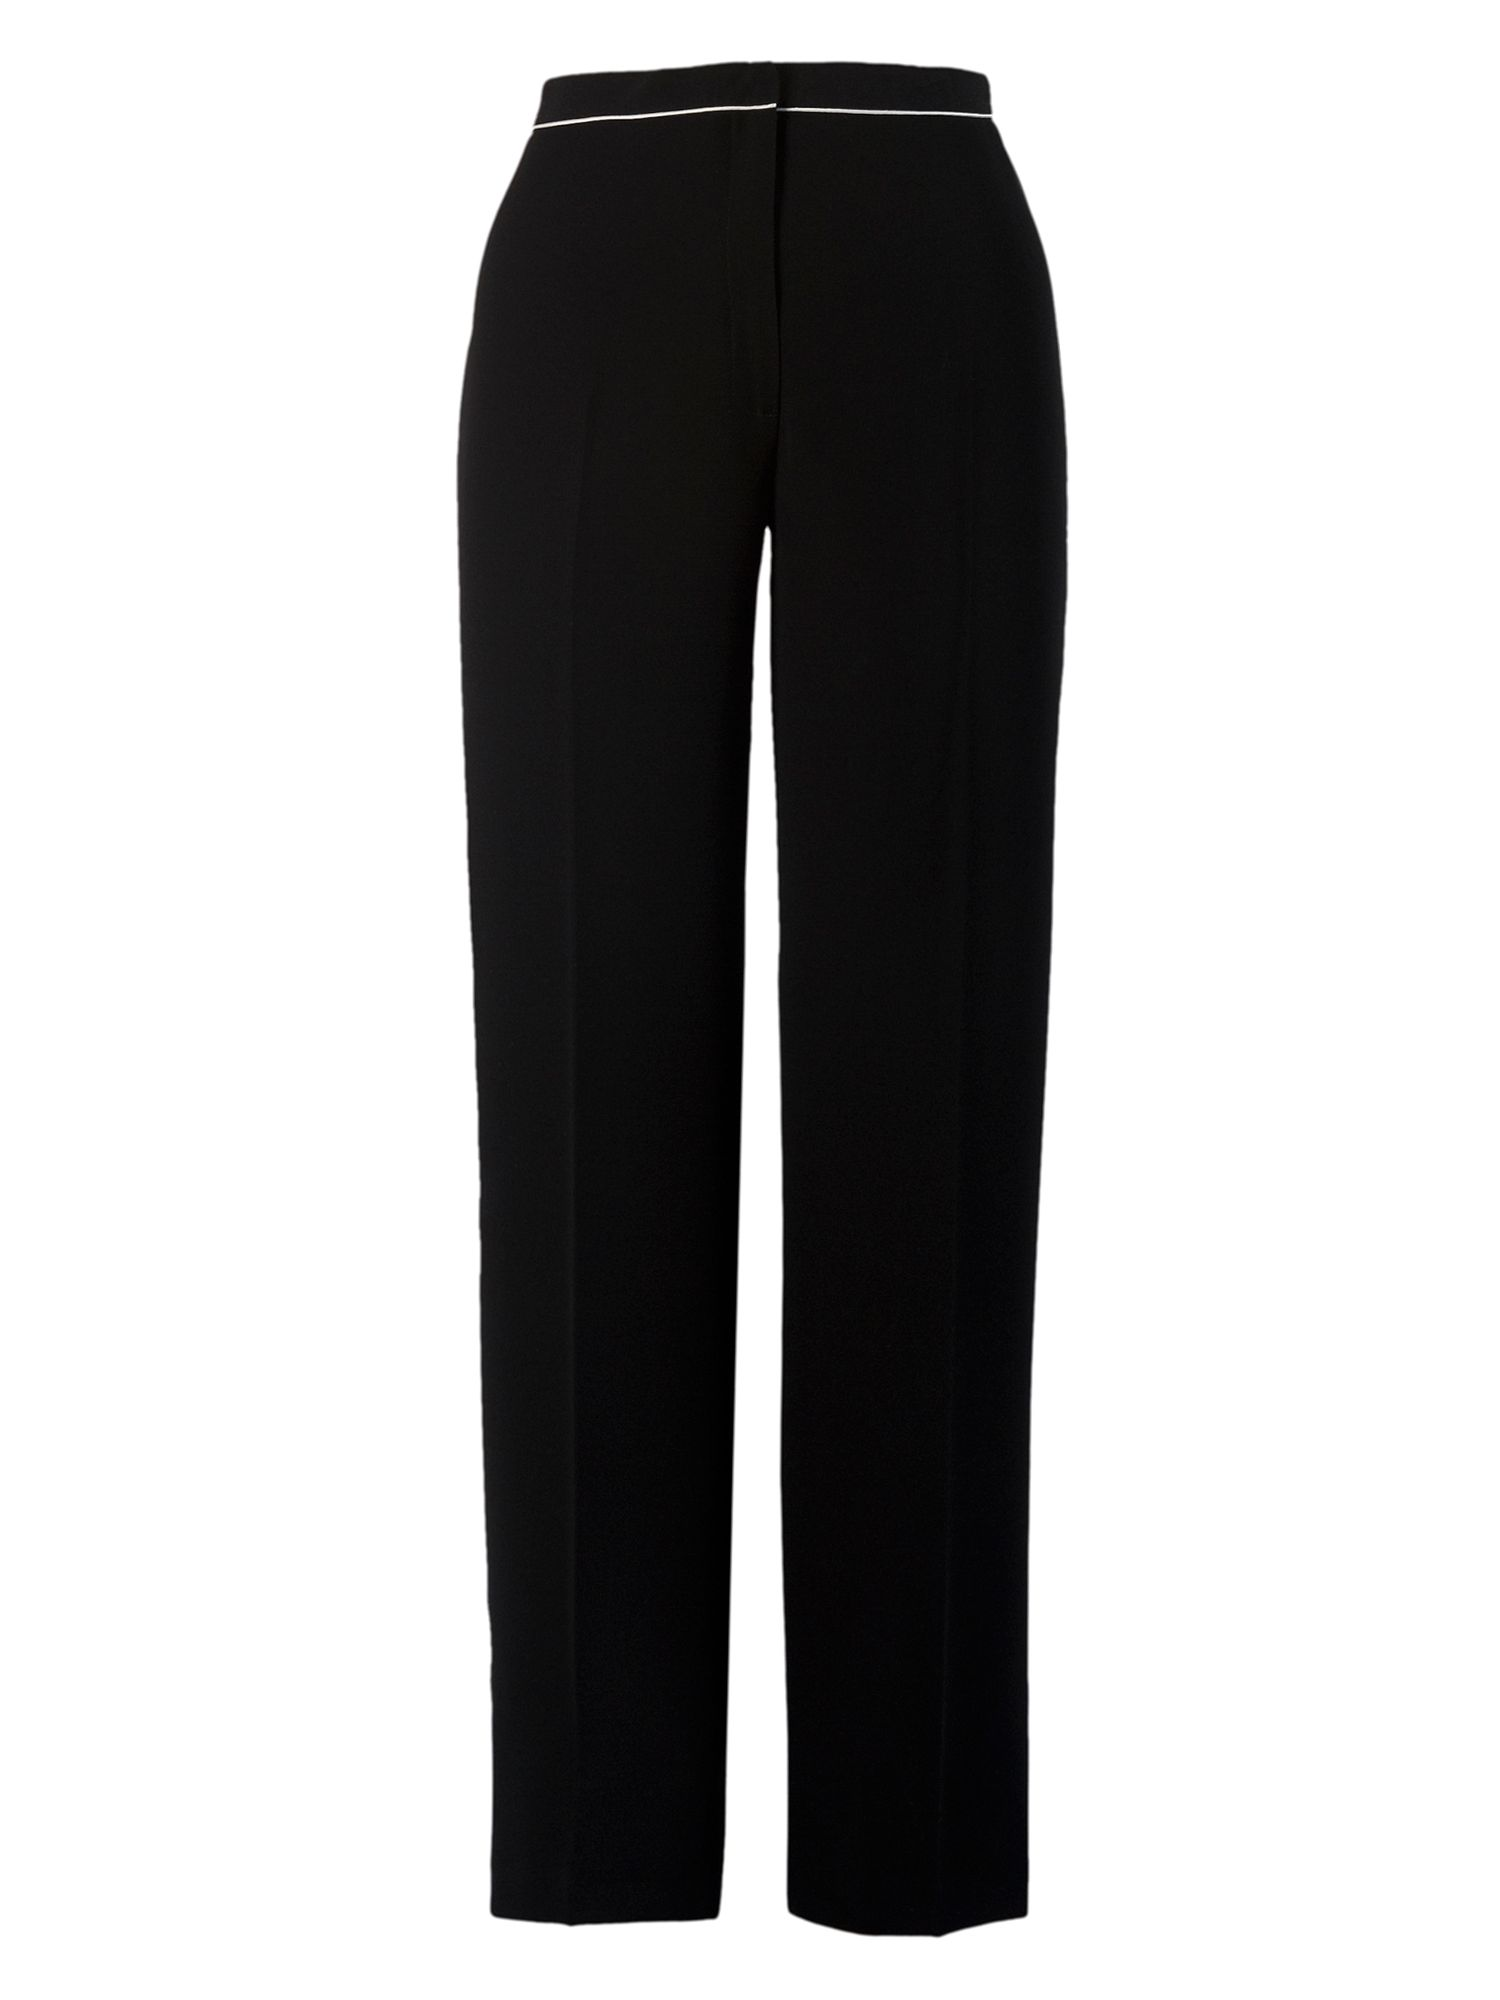 Crepe jersey trouser with piping